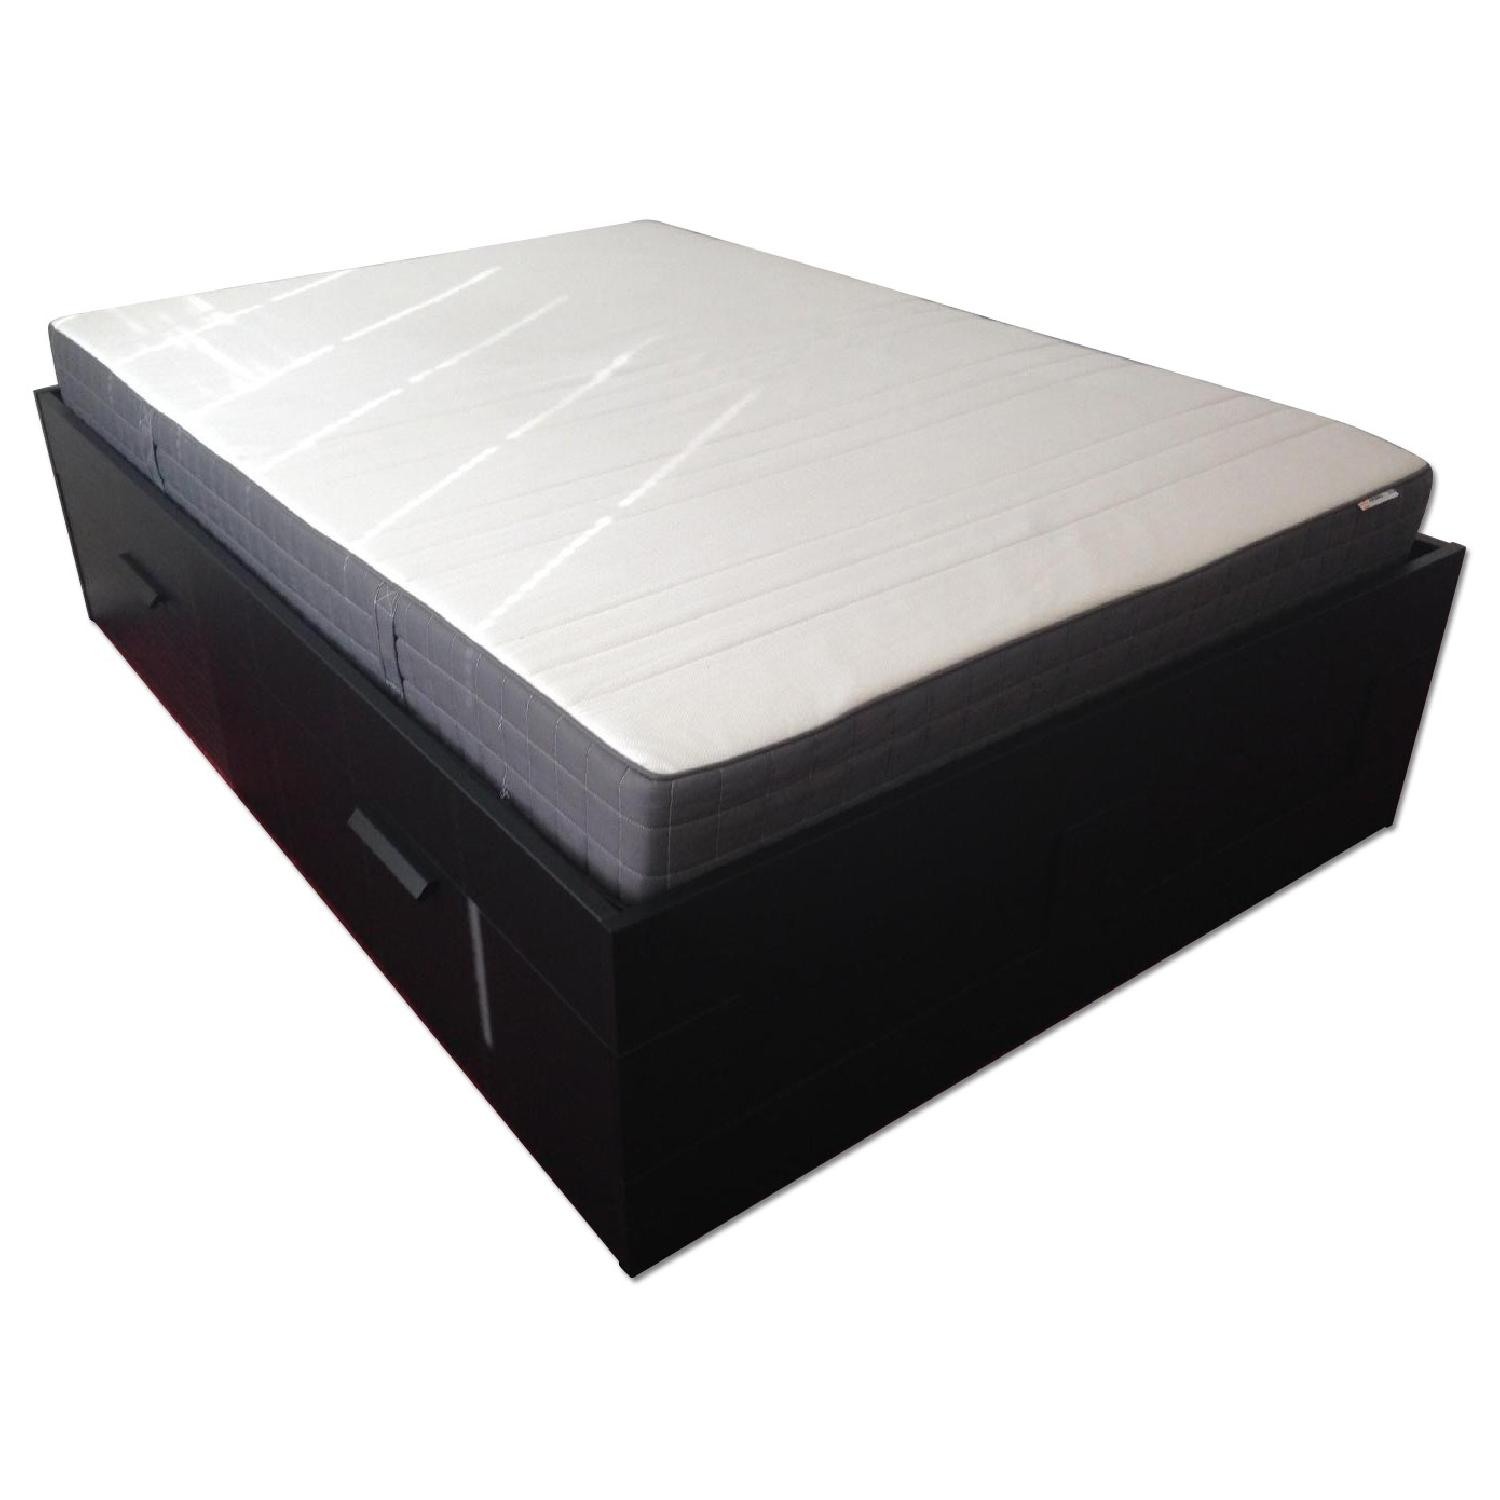 Ikea Brimnes Captains Full Size Bed w/ 4 Drawers - image-0